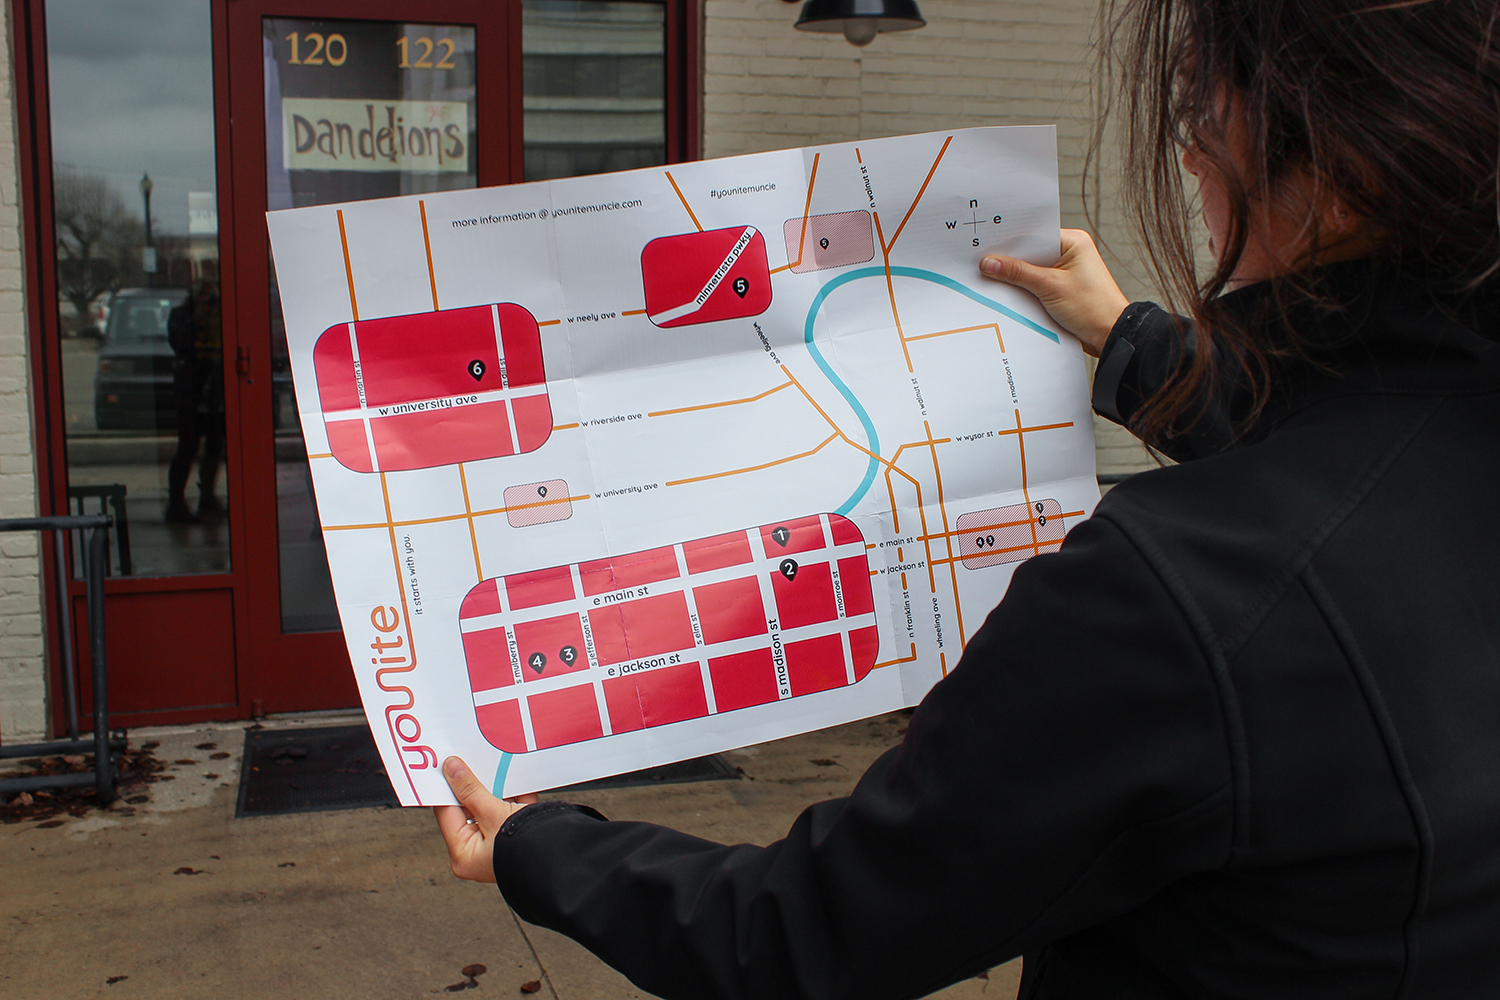 Double Sided—Side One: Map of Muncie; Side Two: Brief Questionairres from Companies